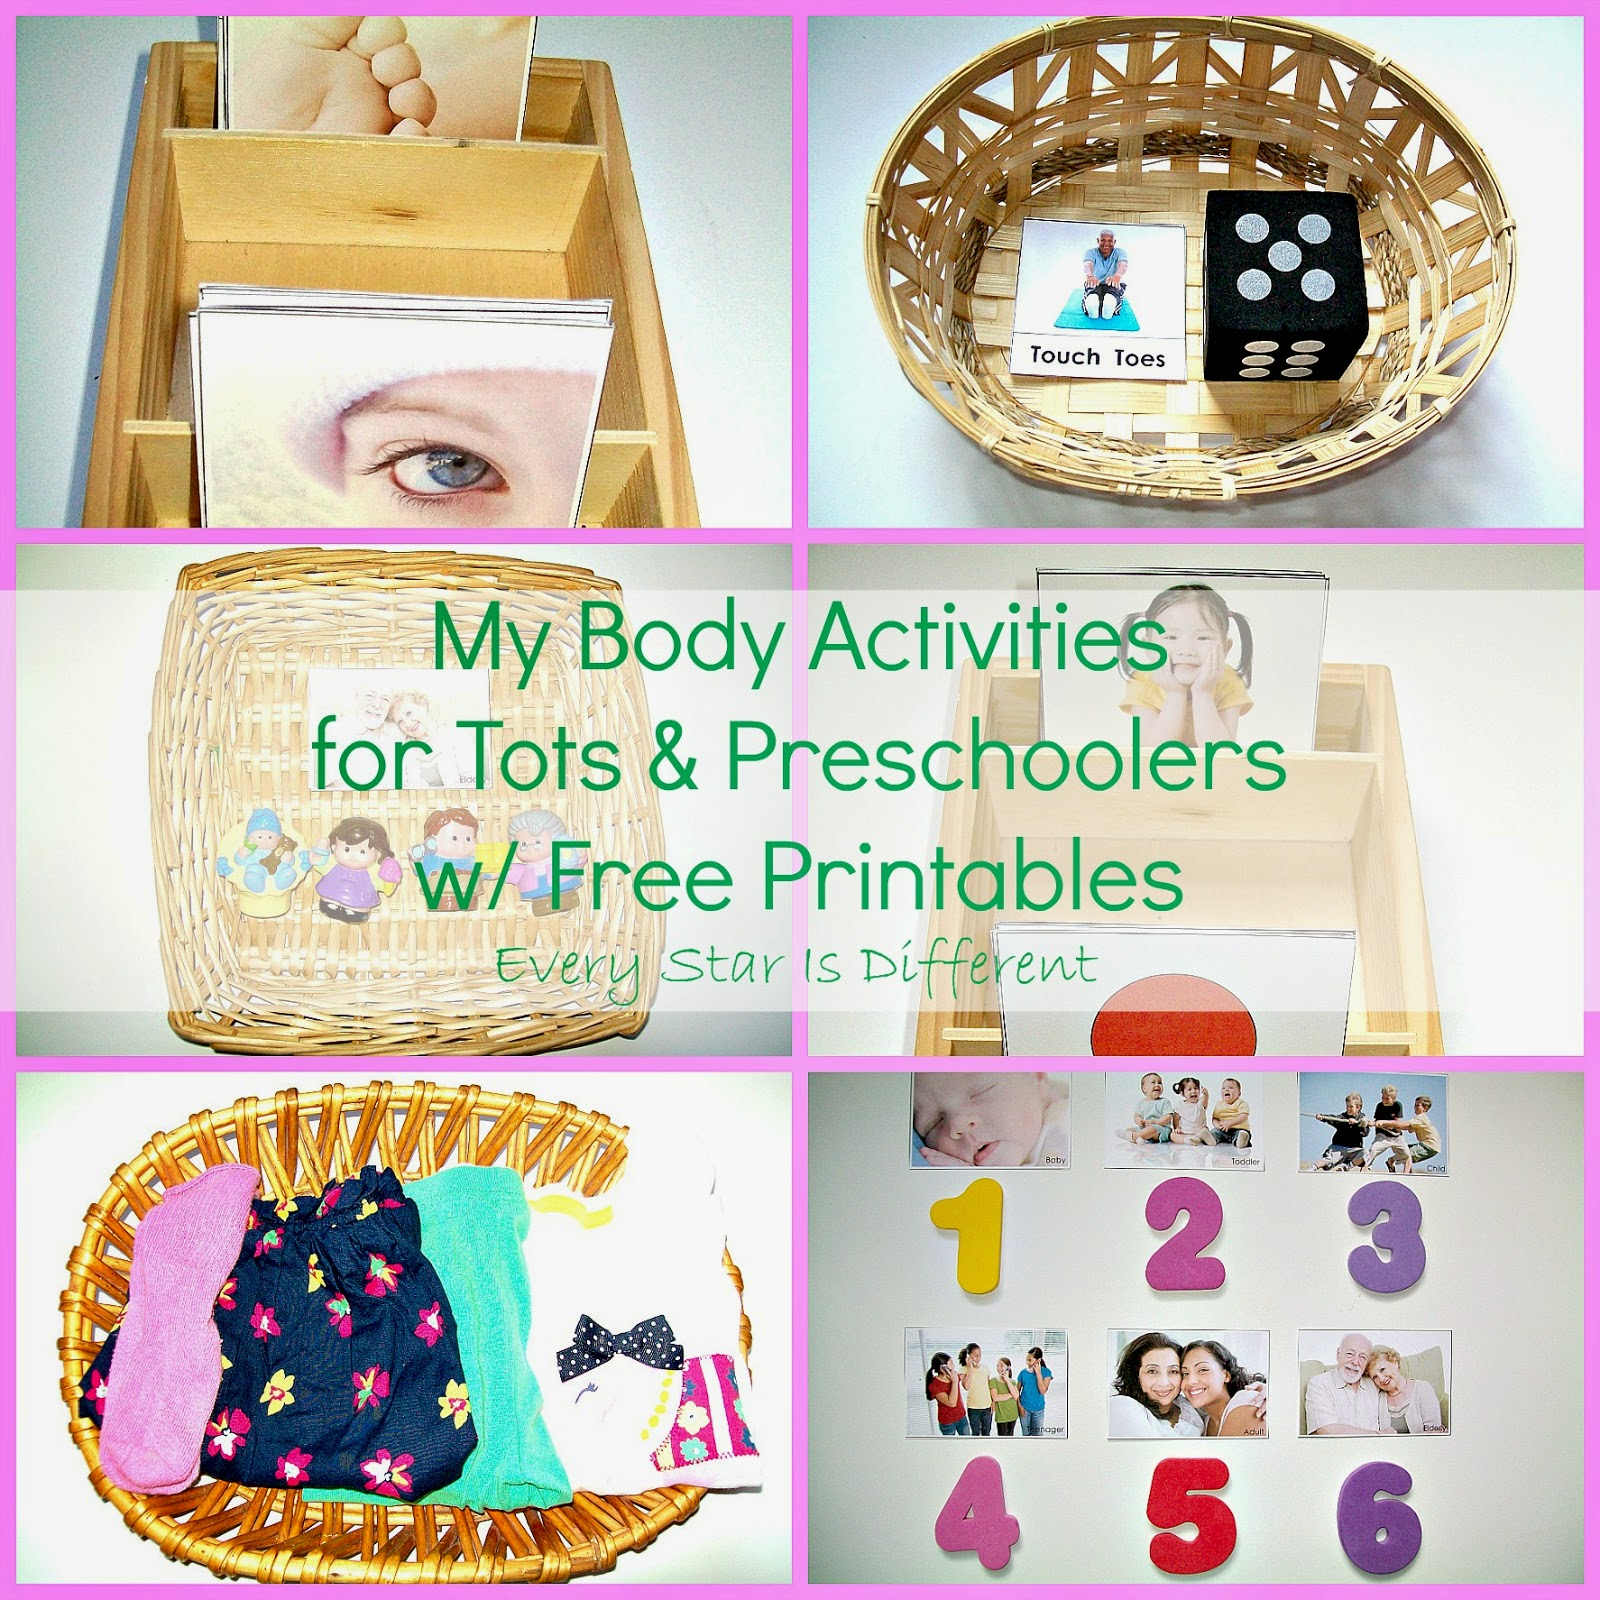 Every Star Is Different My Body Activities For Tots